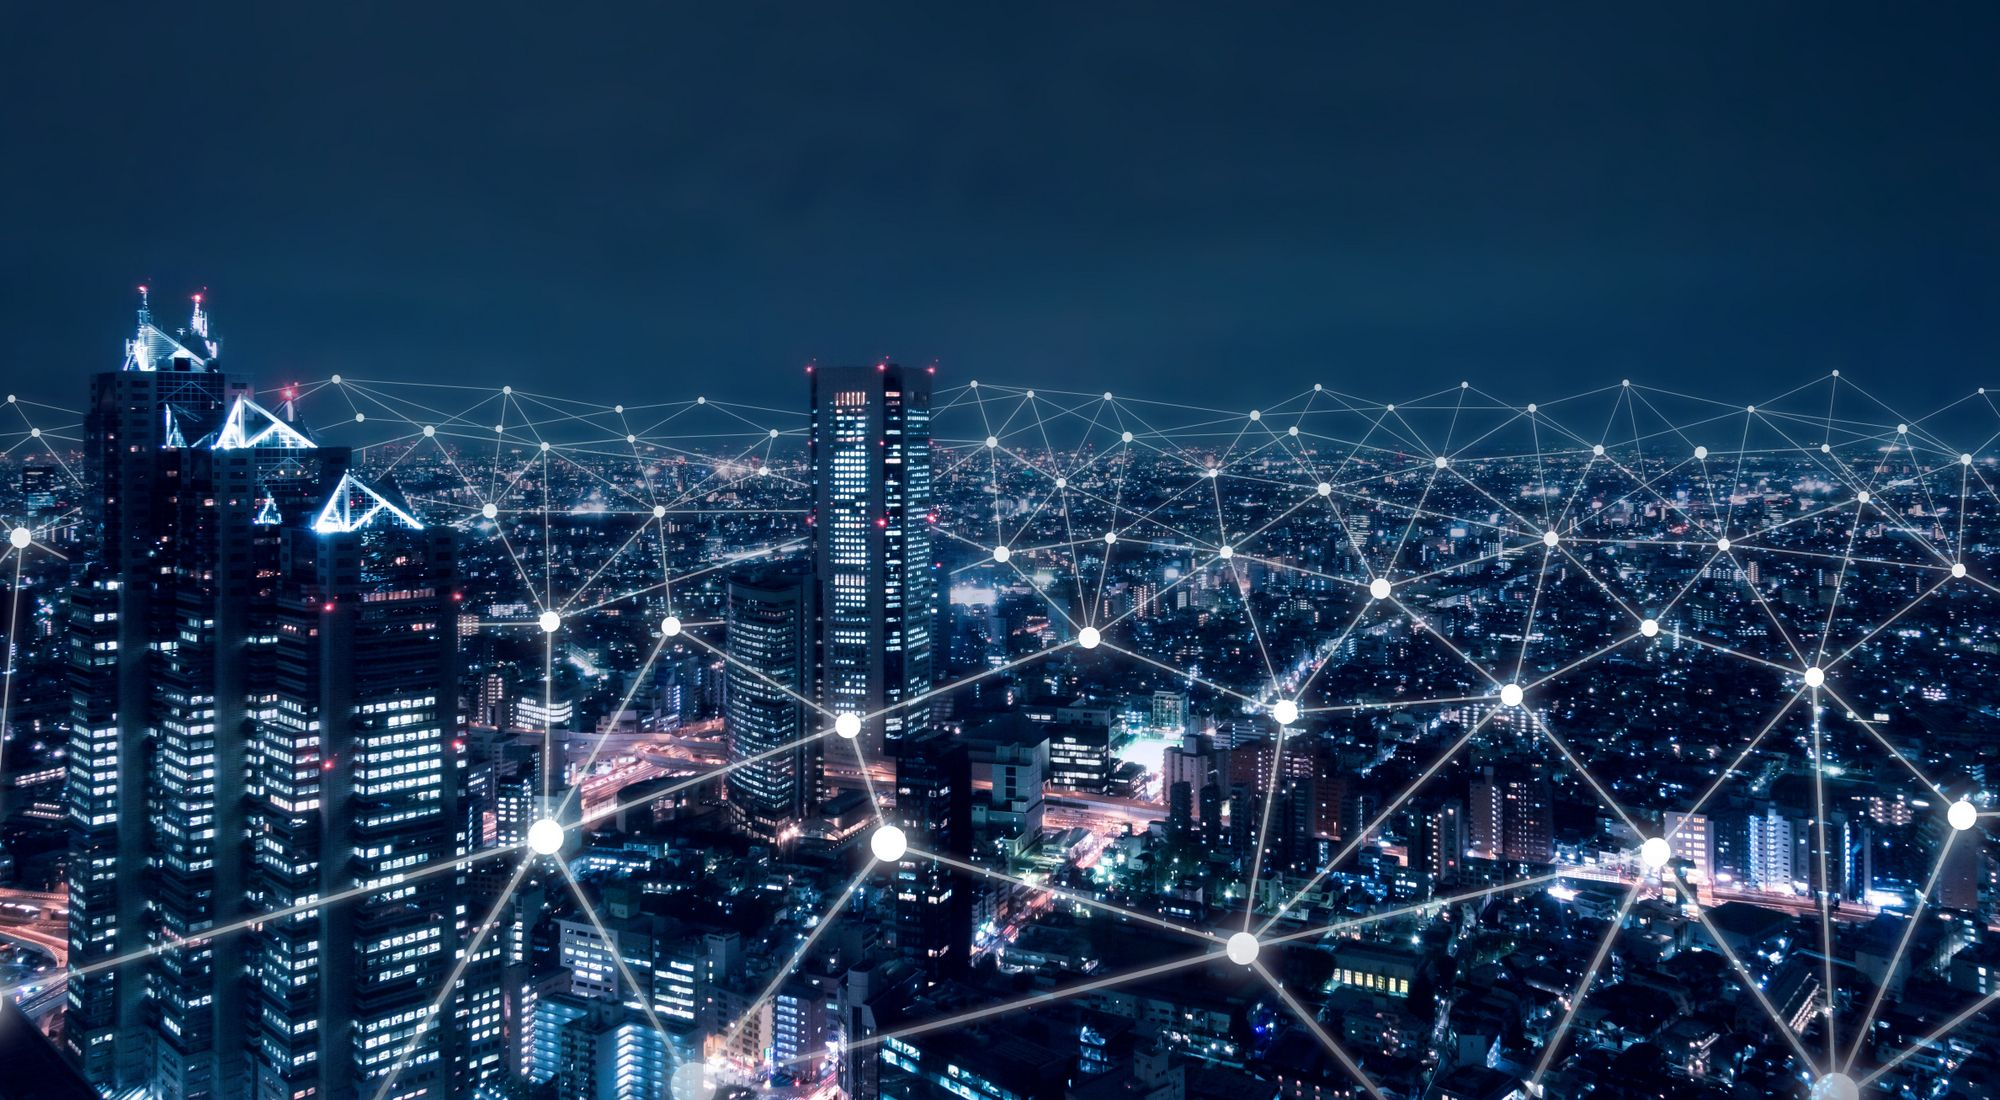 city lights at night overlaid with network points